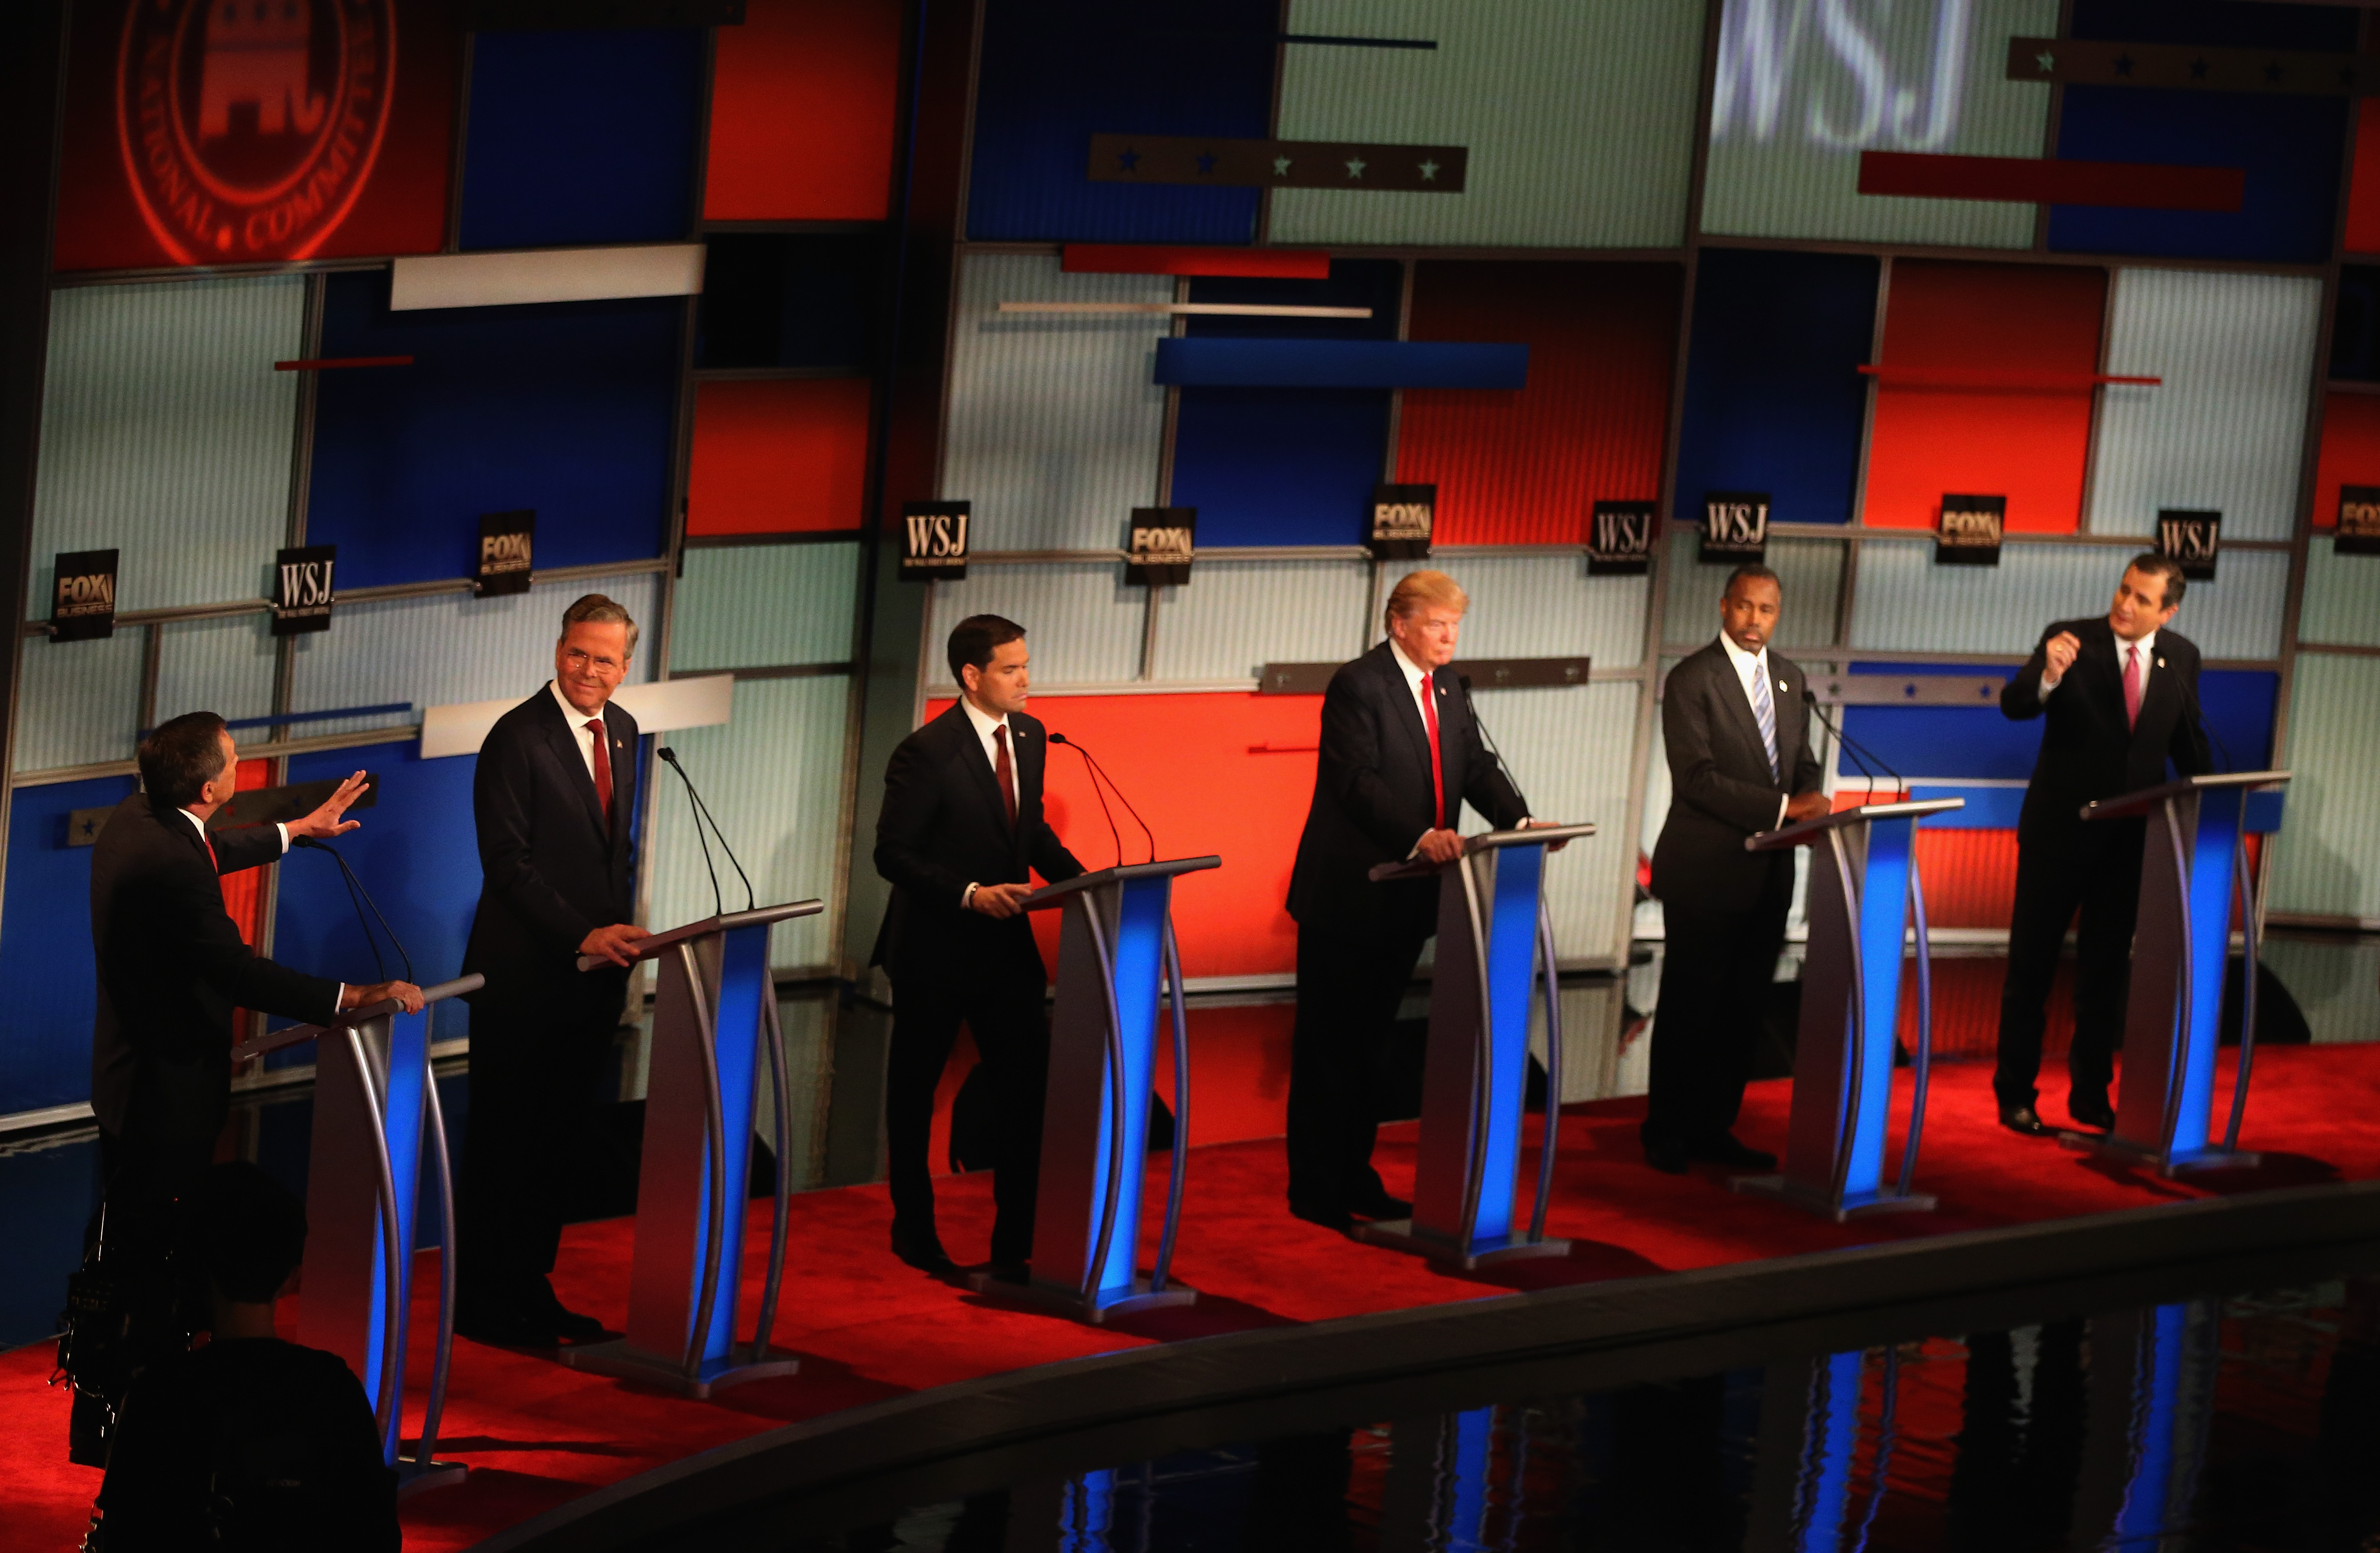 Presidential candidates take part in the Republican Presidential Debate sponsored by Fox Business and the Wall Street Journal at the Milwaukee Theatre November 10, 2015 in Milwaukee, Wisconsin.